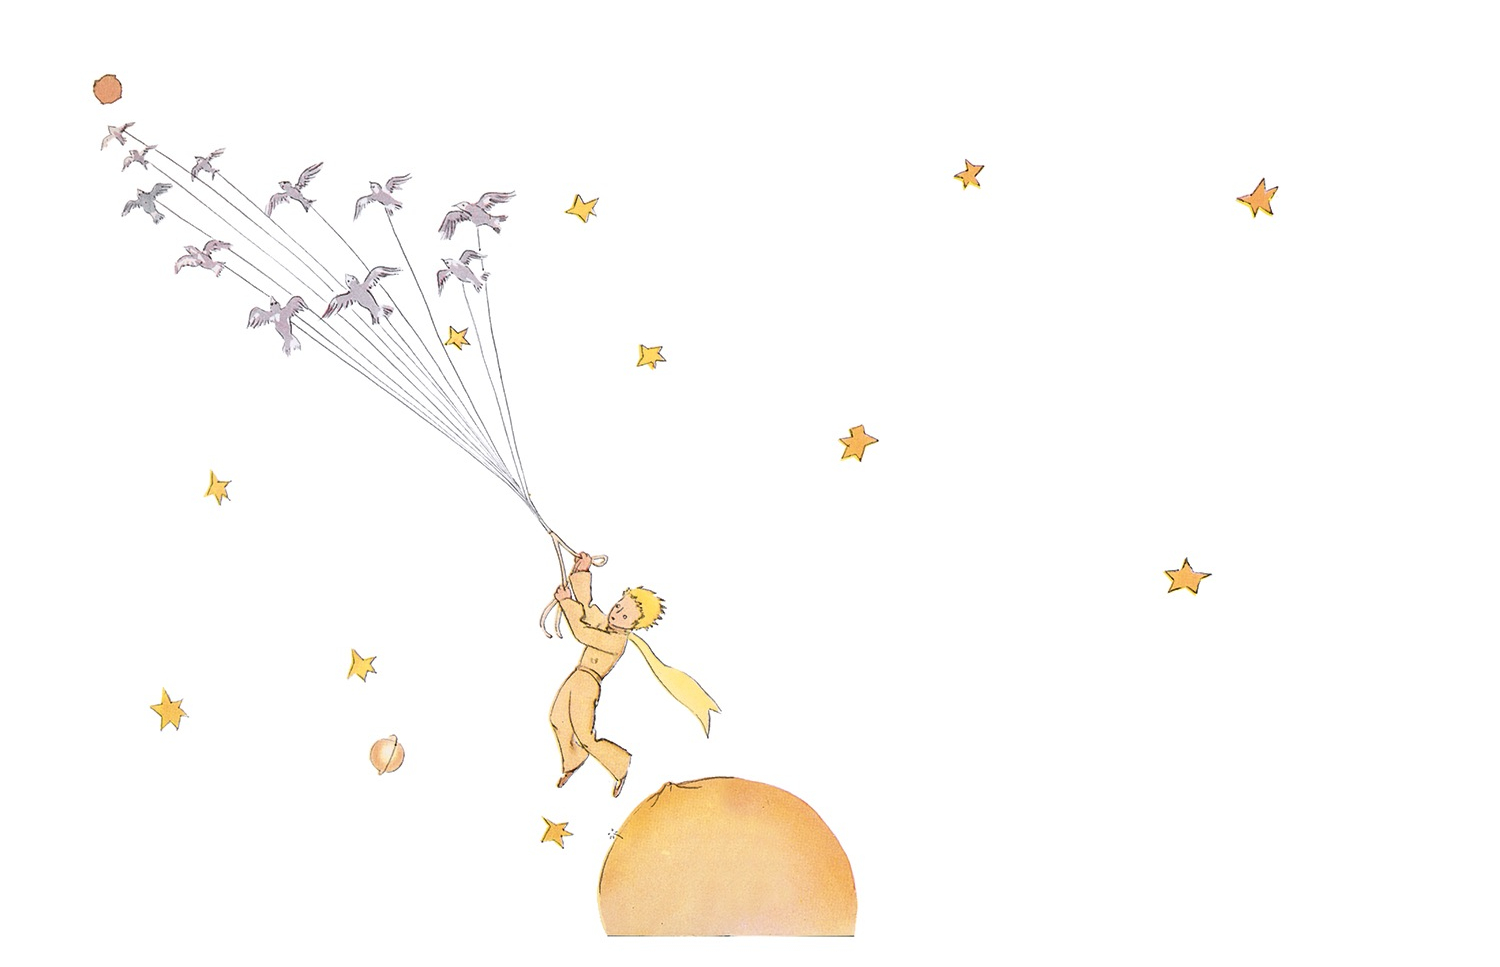 """The Little Prince"" illustration by Antoine de Saint-Exupéry"